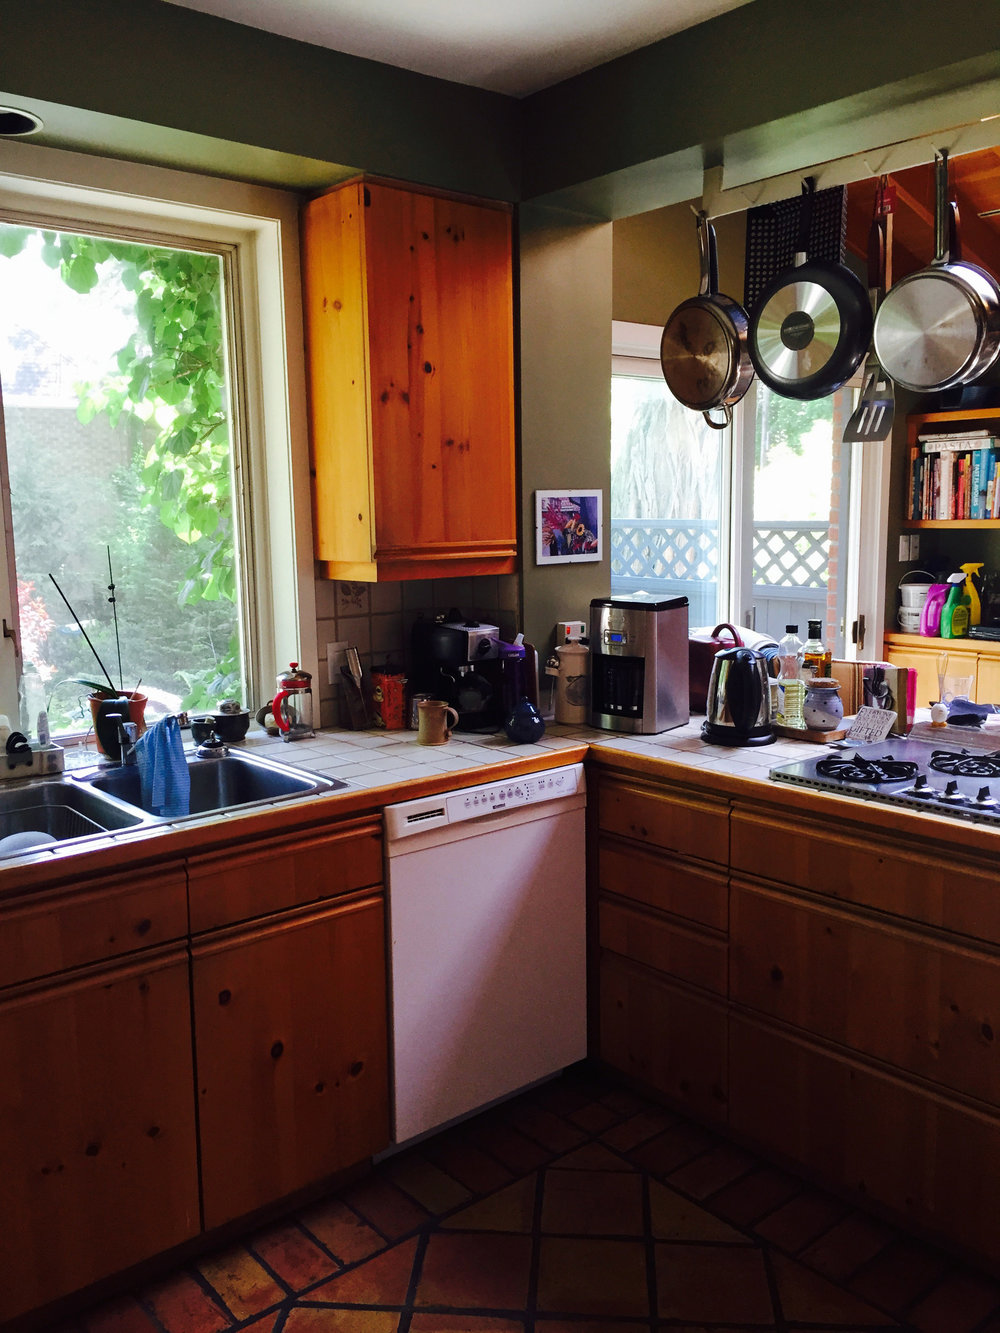 IMG_2474 - Kitchen BEFORE Low.jpg